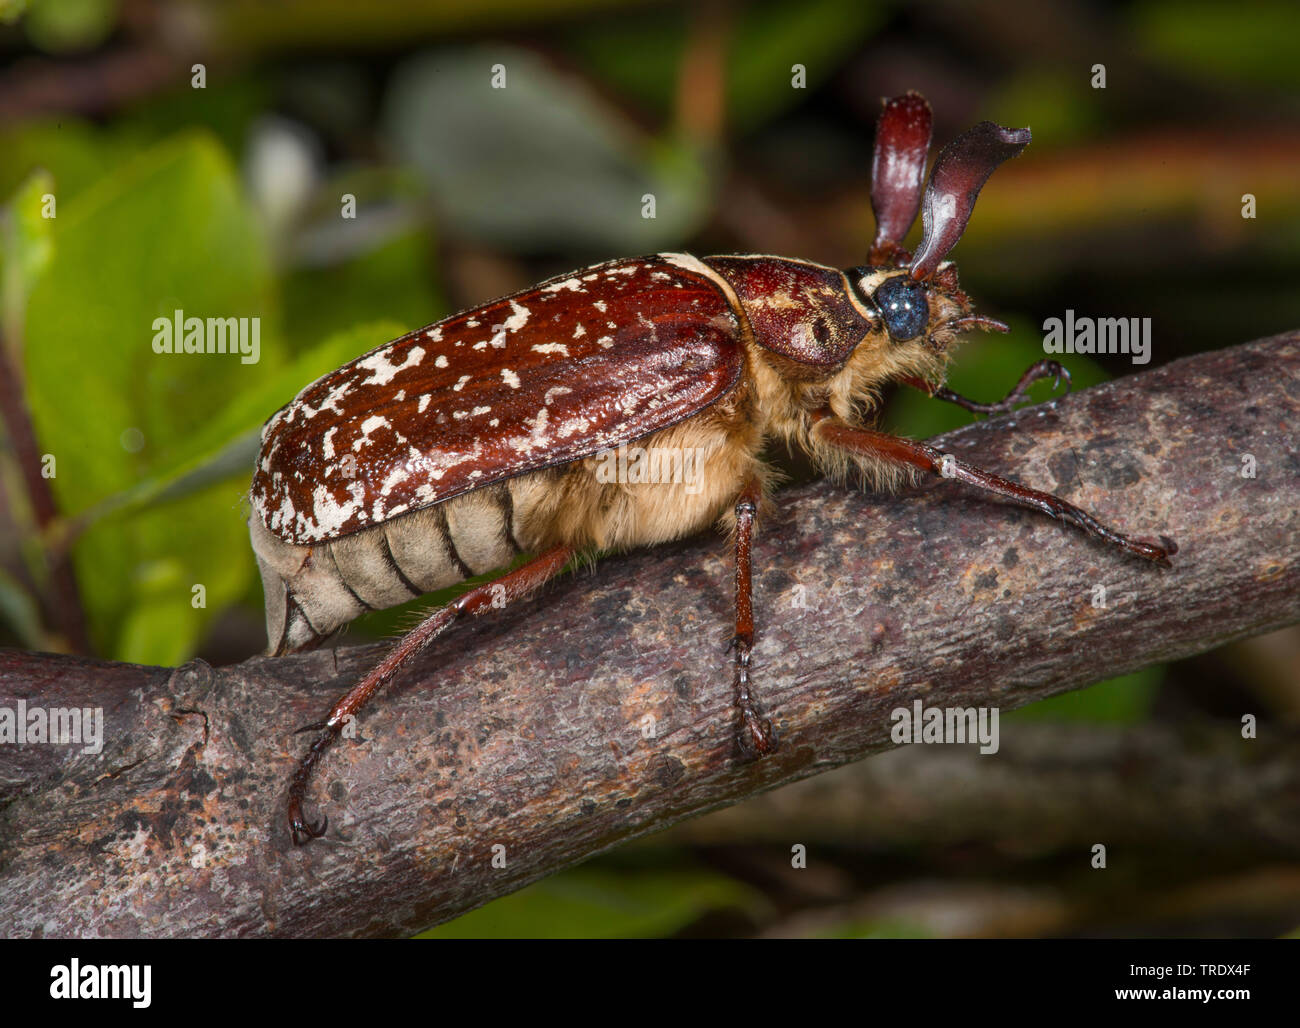 fuller (Polyphylla fullo), sitting on a branch, Germany Stock Photo